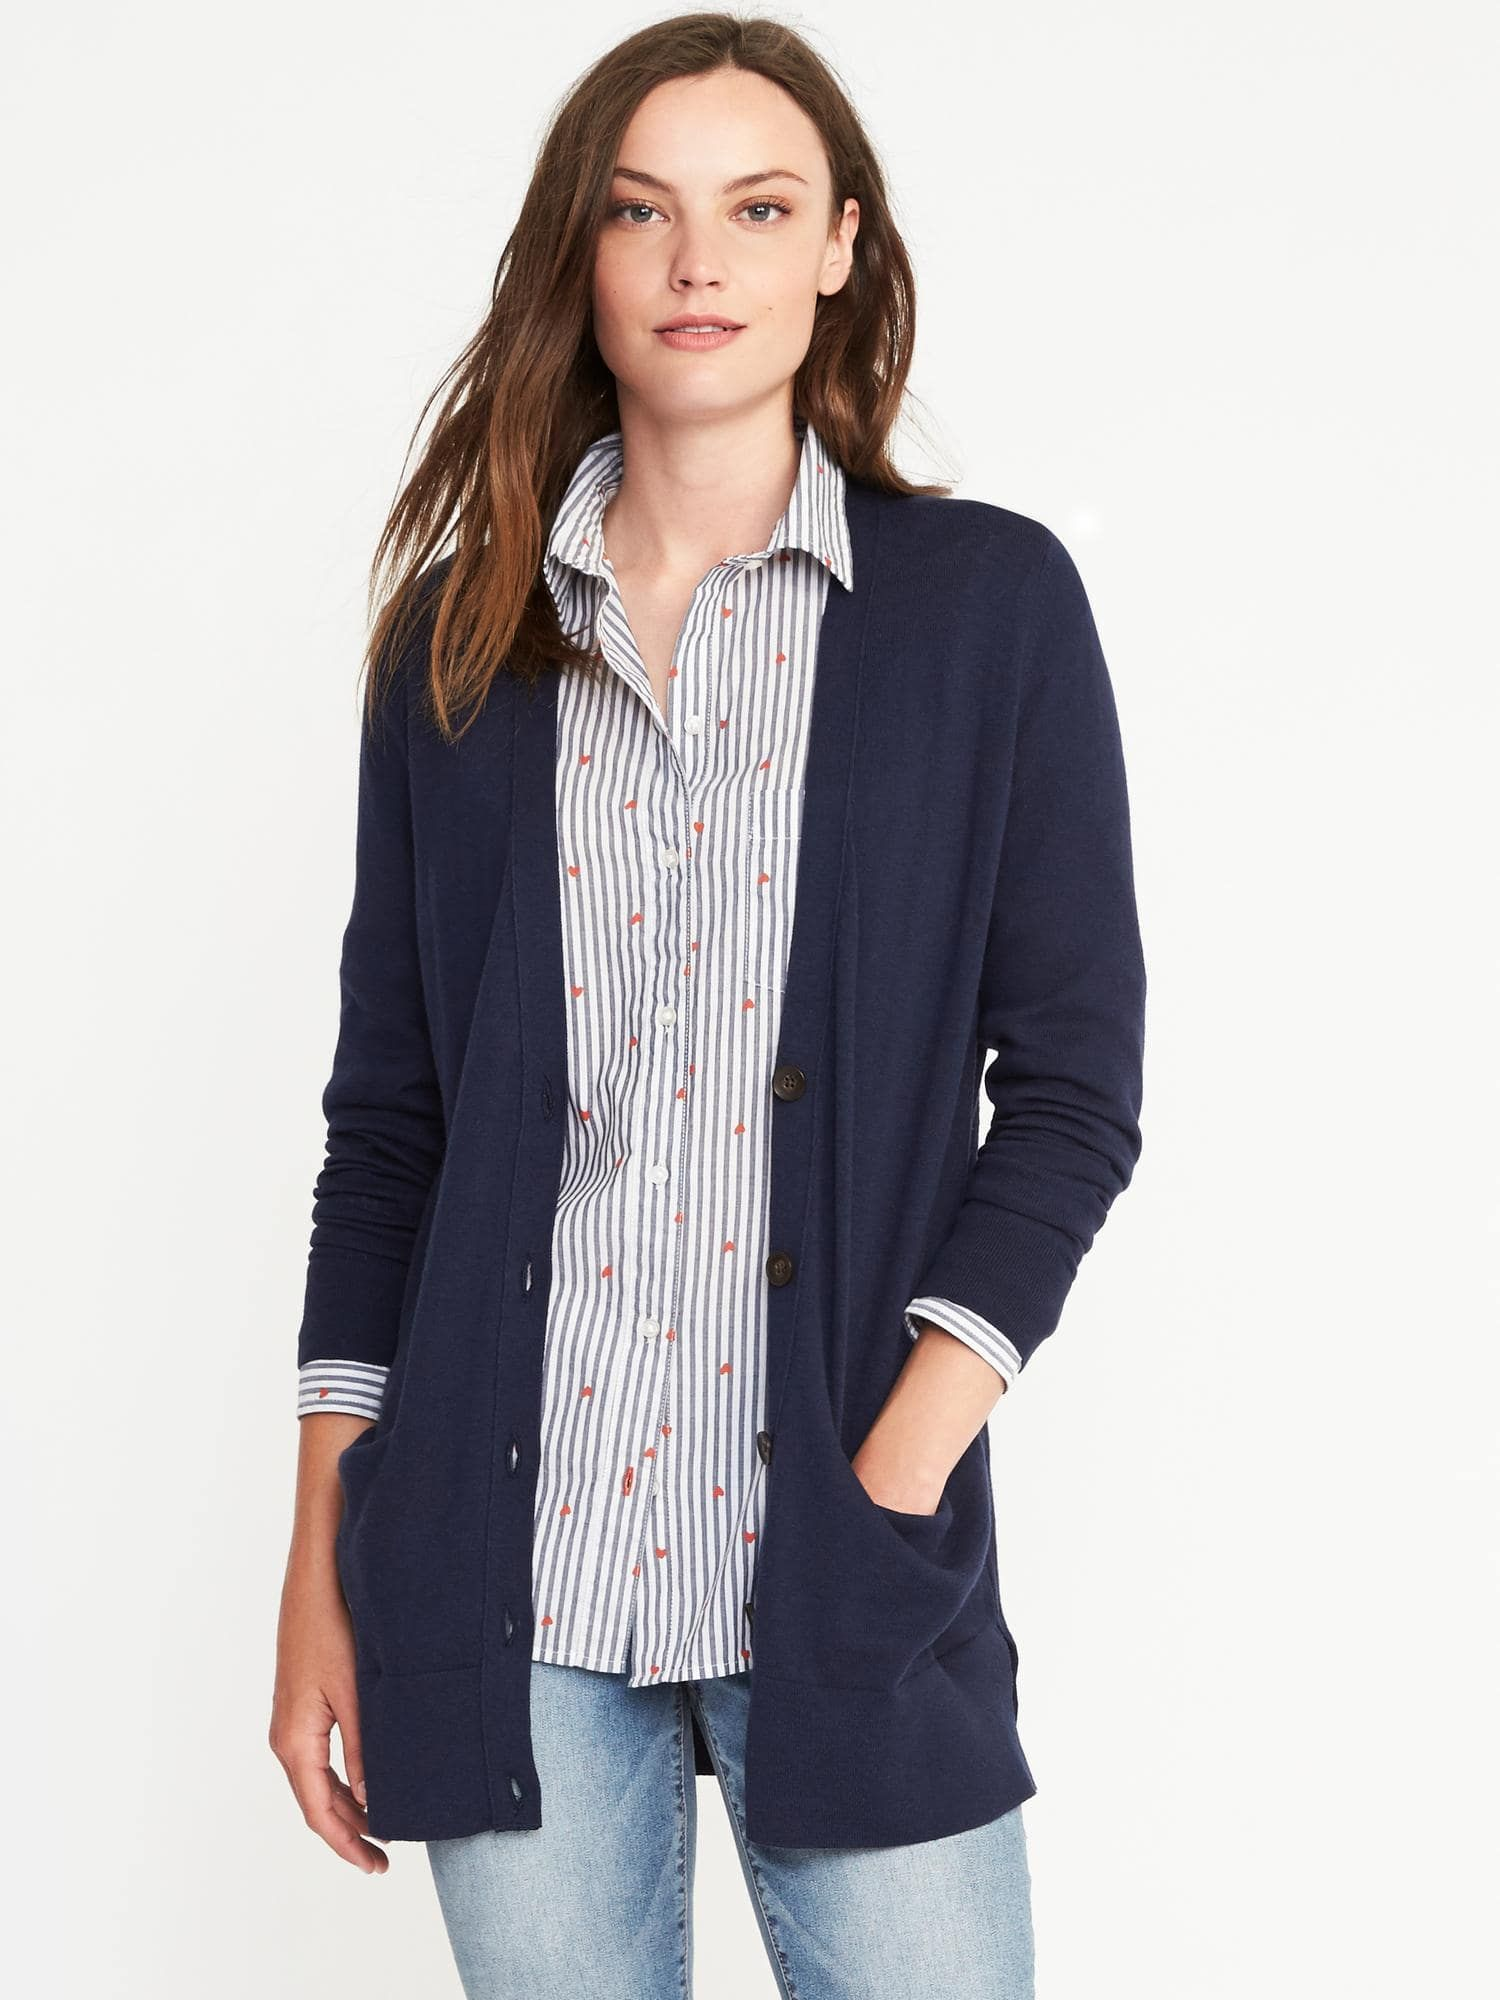 Perfect Boyfriend Cardi for Women | Old Navy | Clothes | Pinterest ...